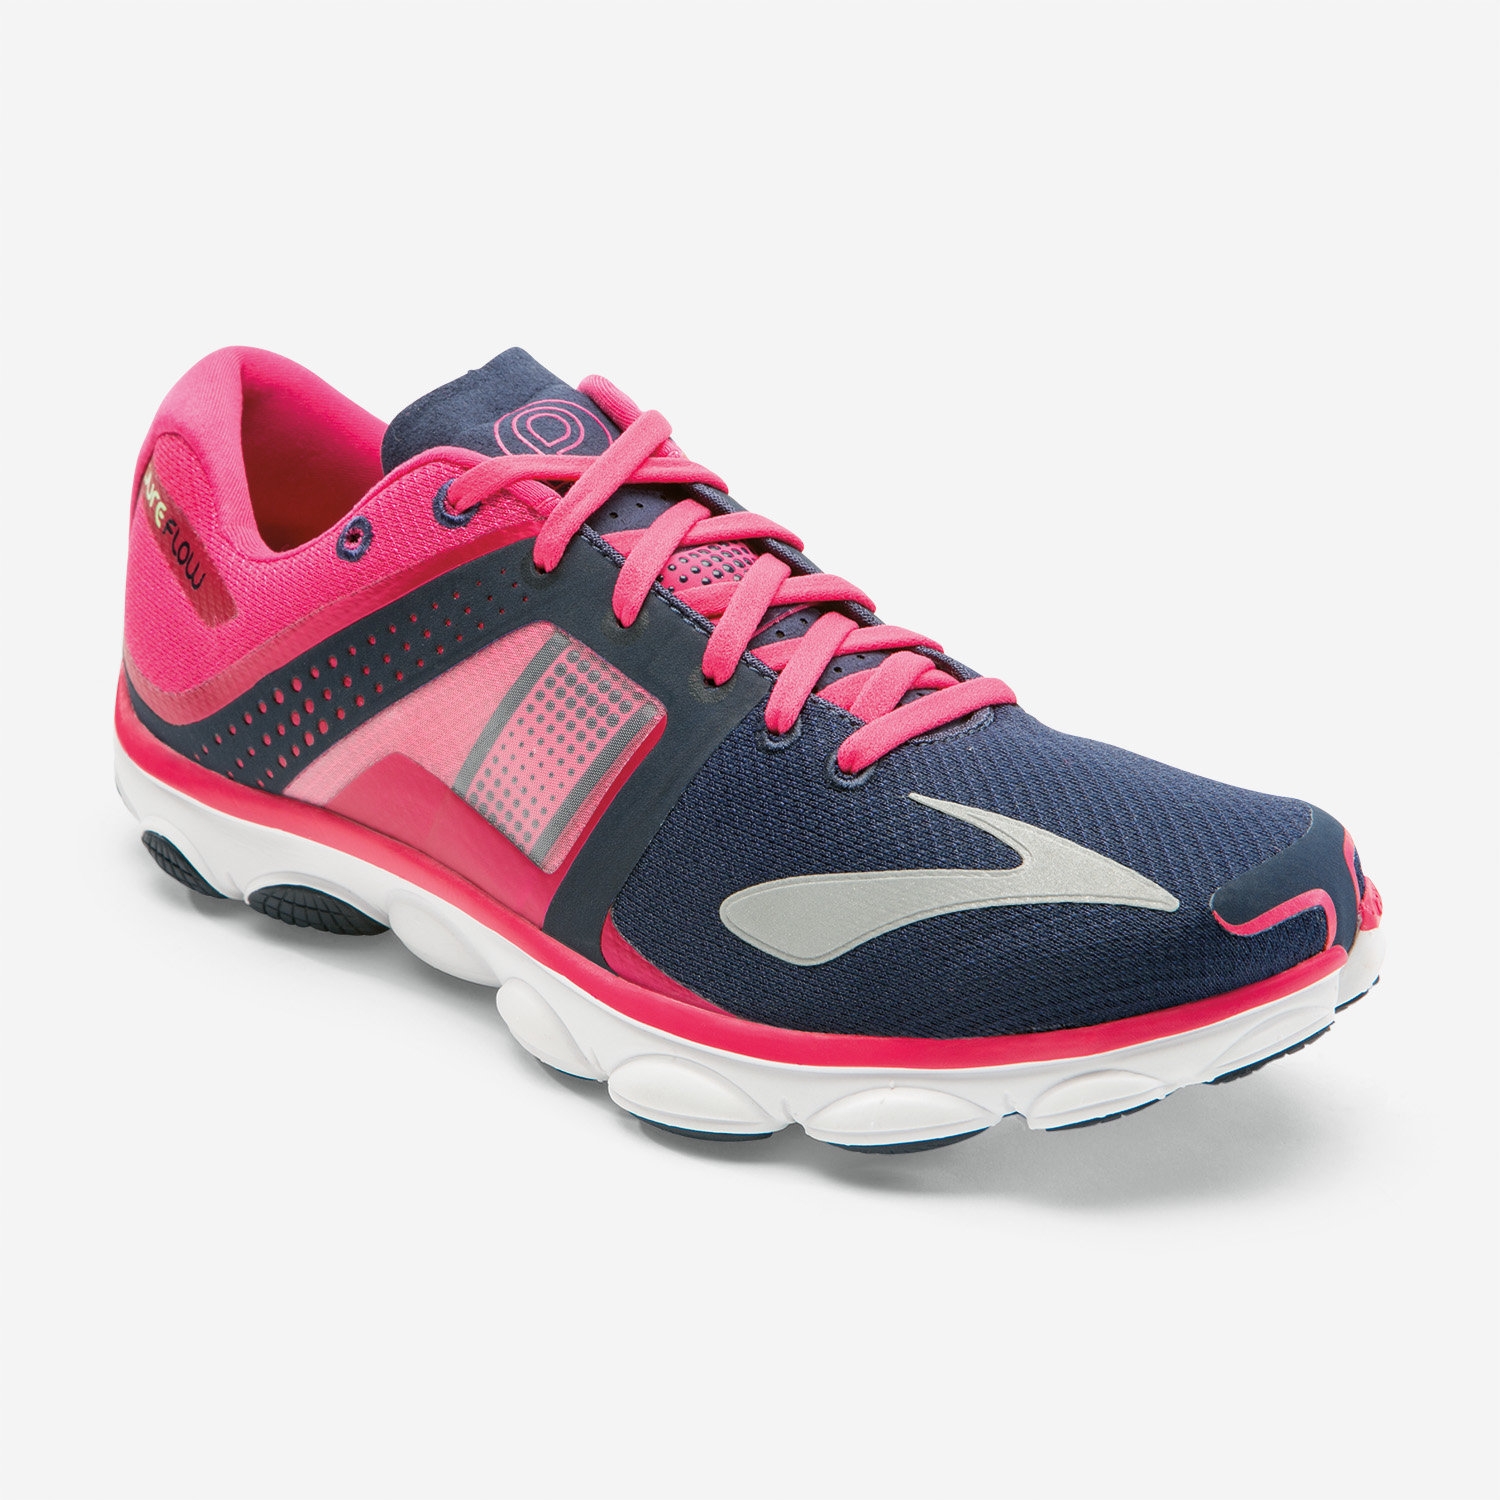 Brooks Lady Pureflow 4 in Dunkelblau. Pink